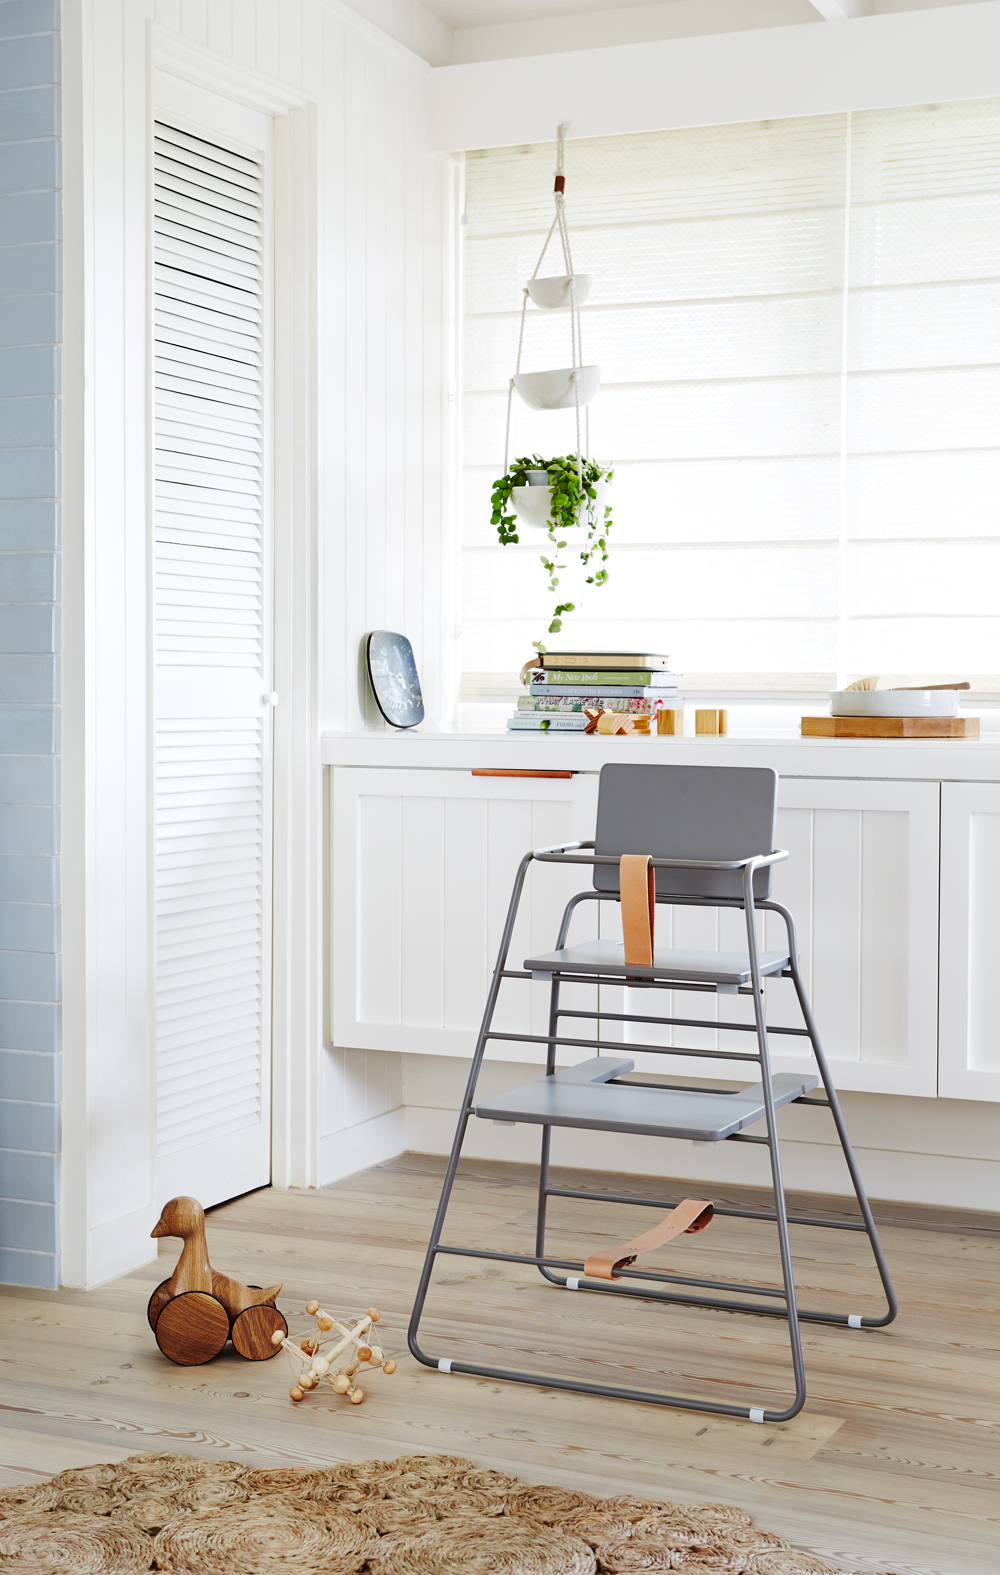 ... Country Road used them in their one-of-a-kind lifestyle cafe (if the tastemakers at Country Road like them you know theyu0027re good!) the TOWER Chair is ...  sc 1 st  The Interiors Addict & Meet the must-have Scandi-style designer high chair - The ...